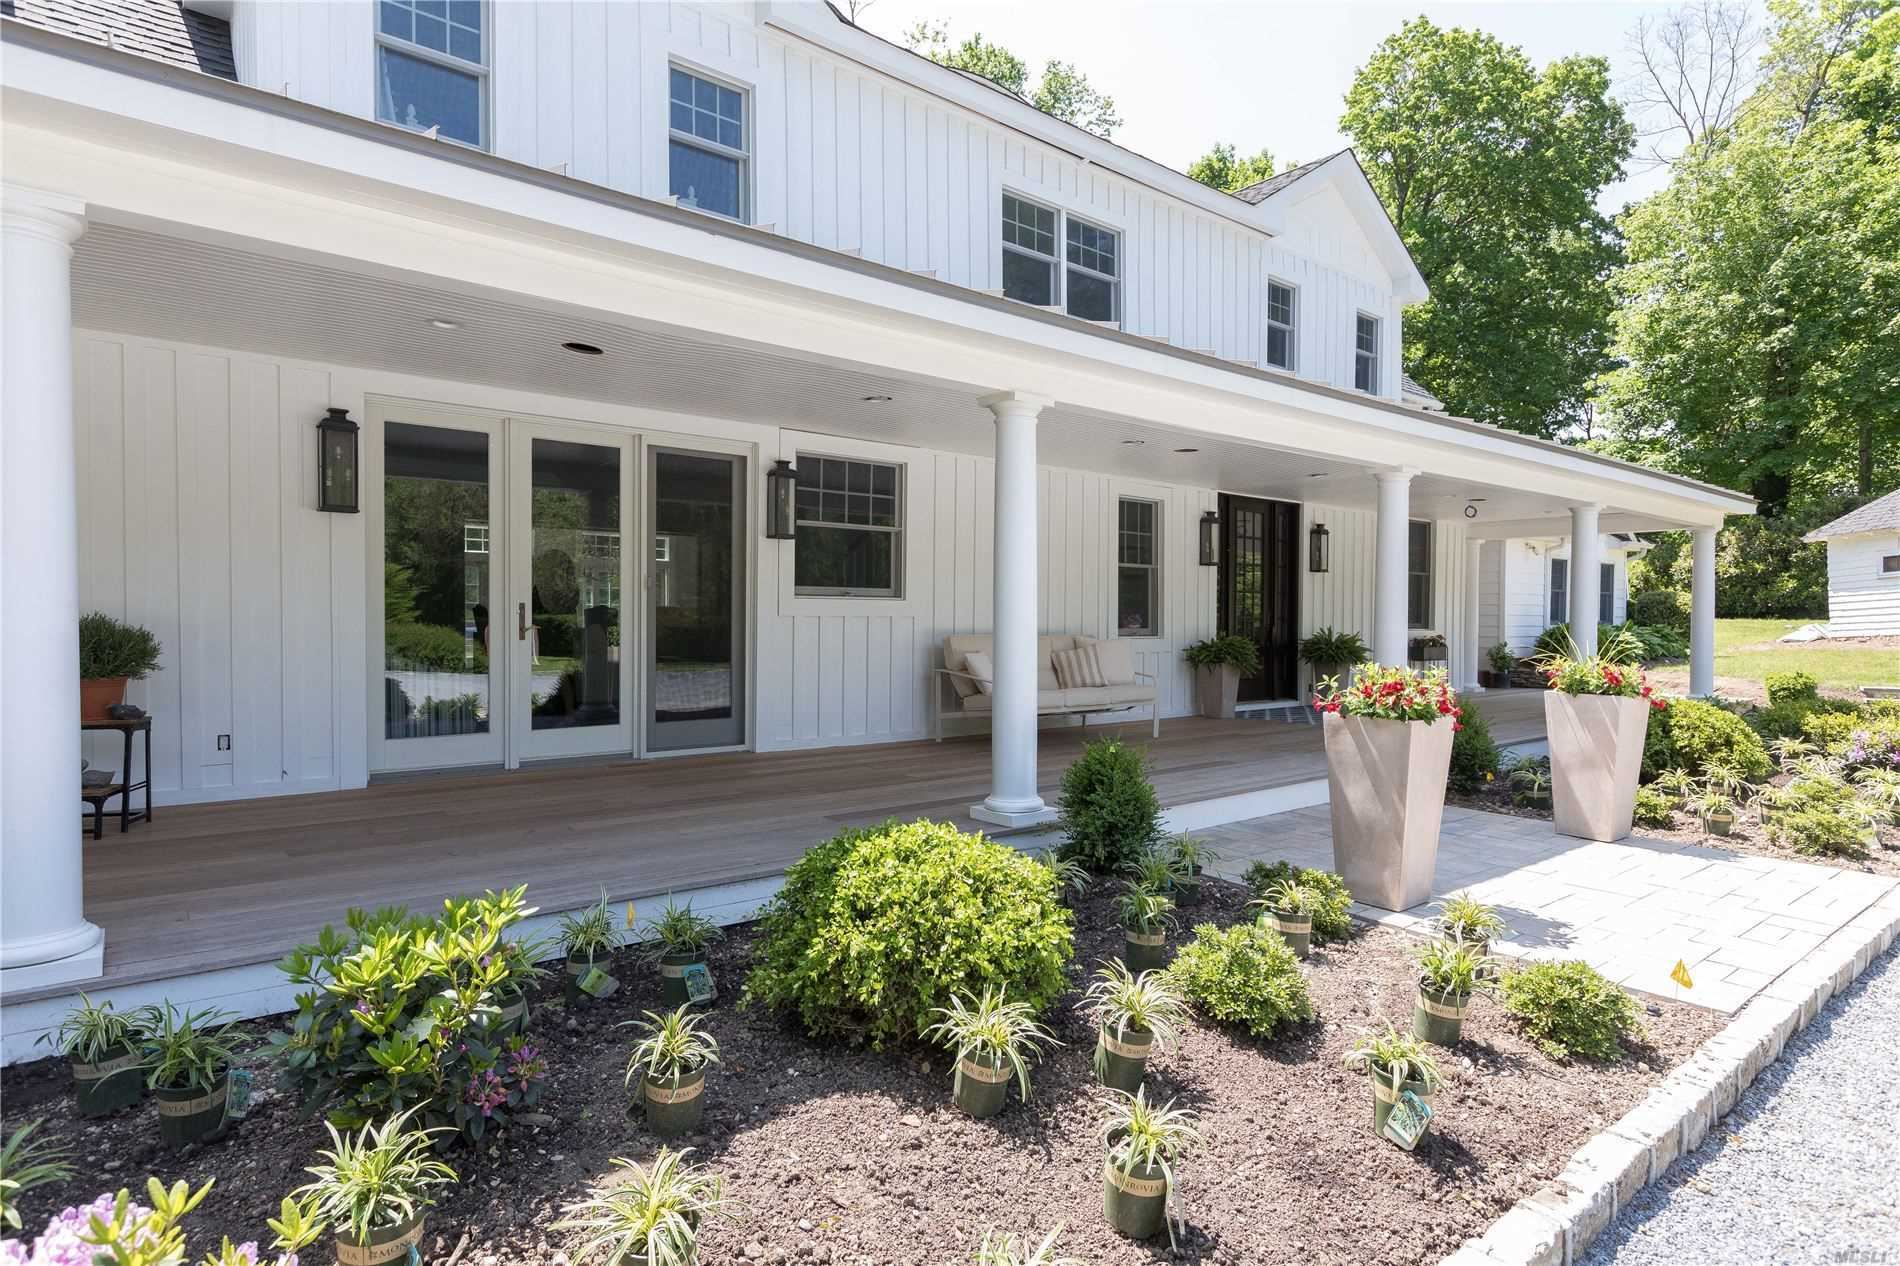 Photo of 78 Cove Road, Oyster Bay Cove, NY 11771 (MLS # 3222105)